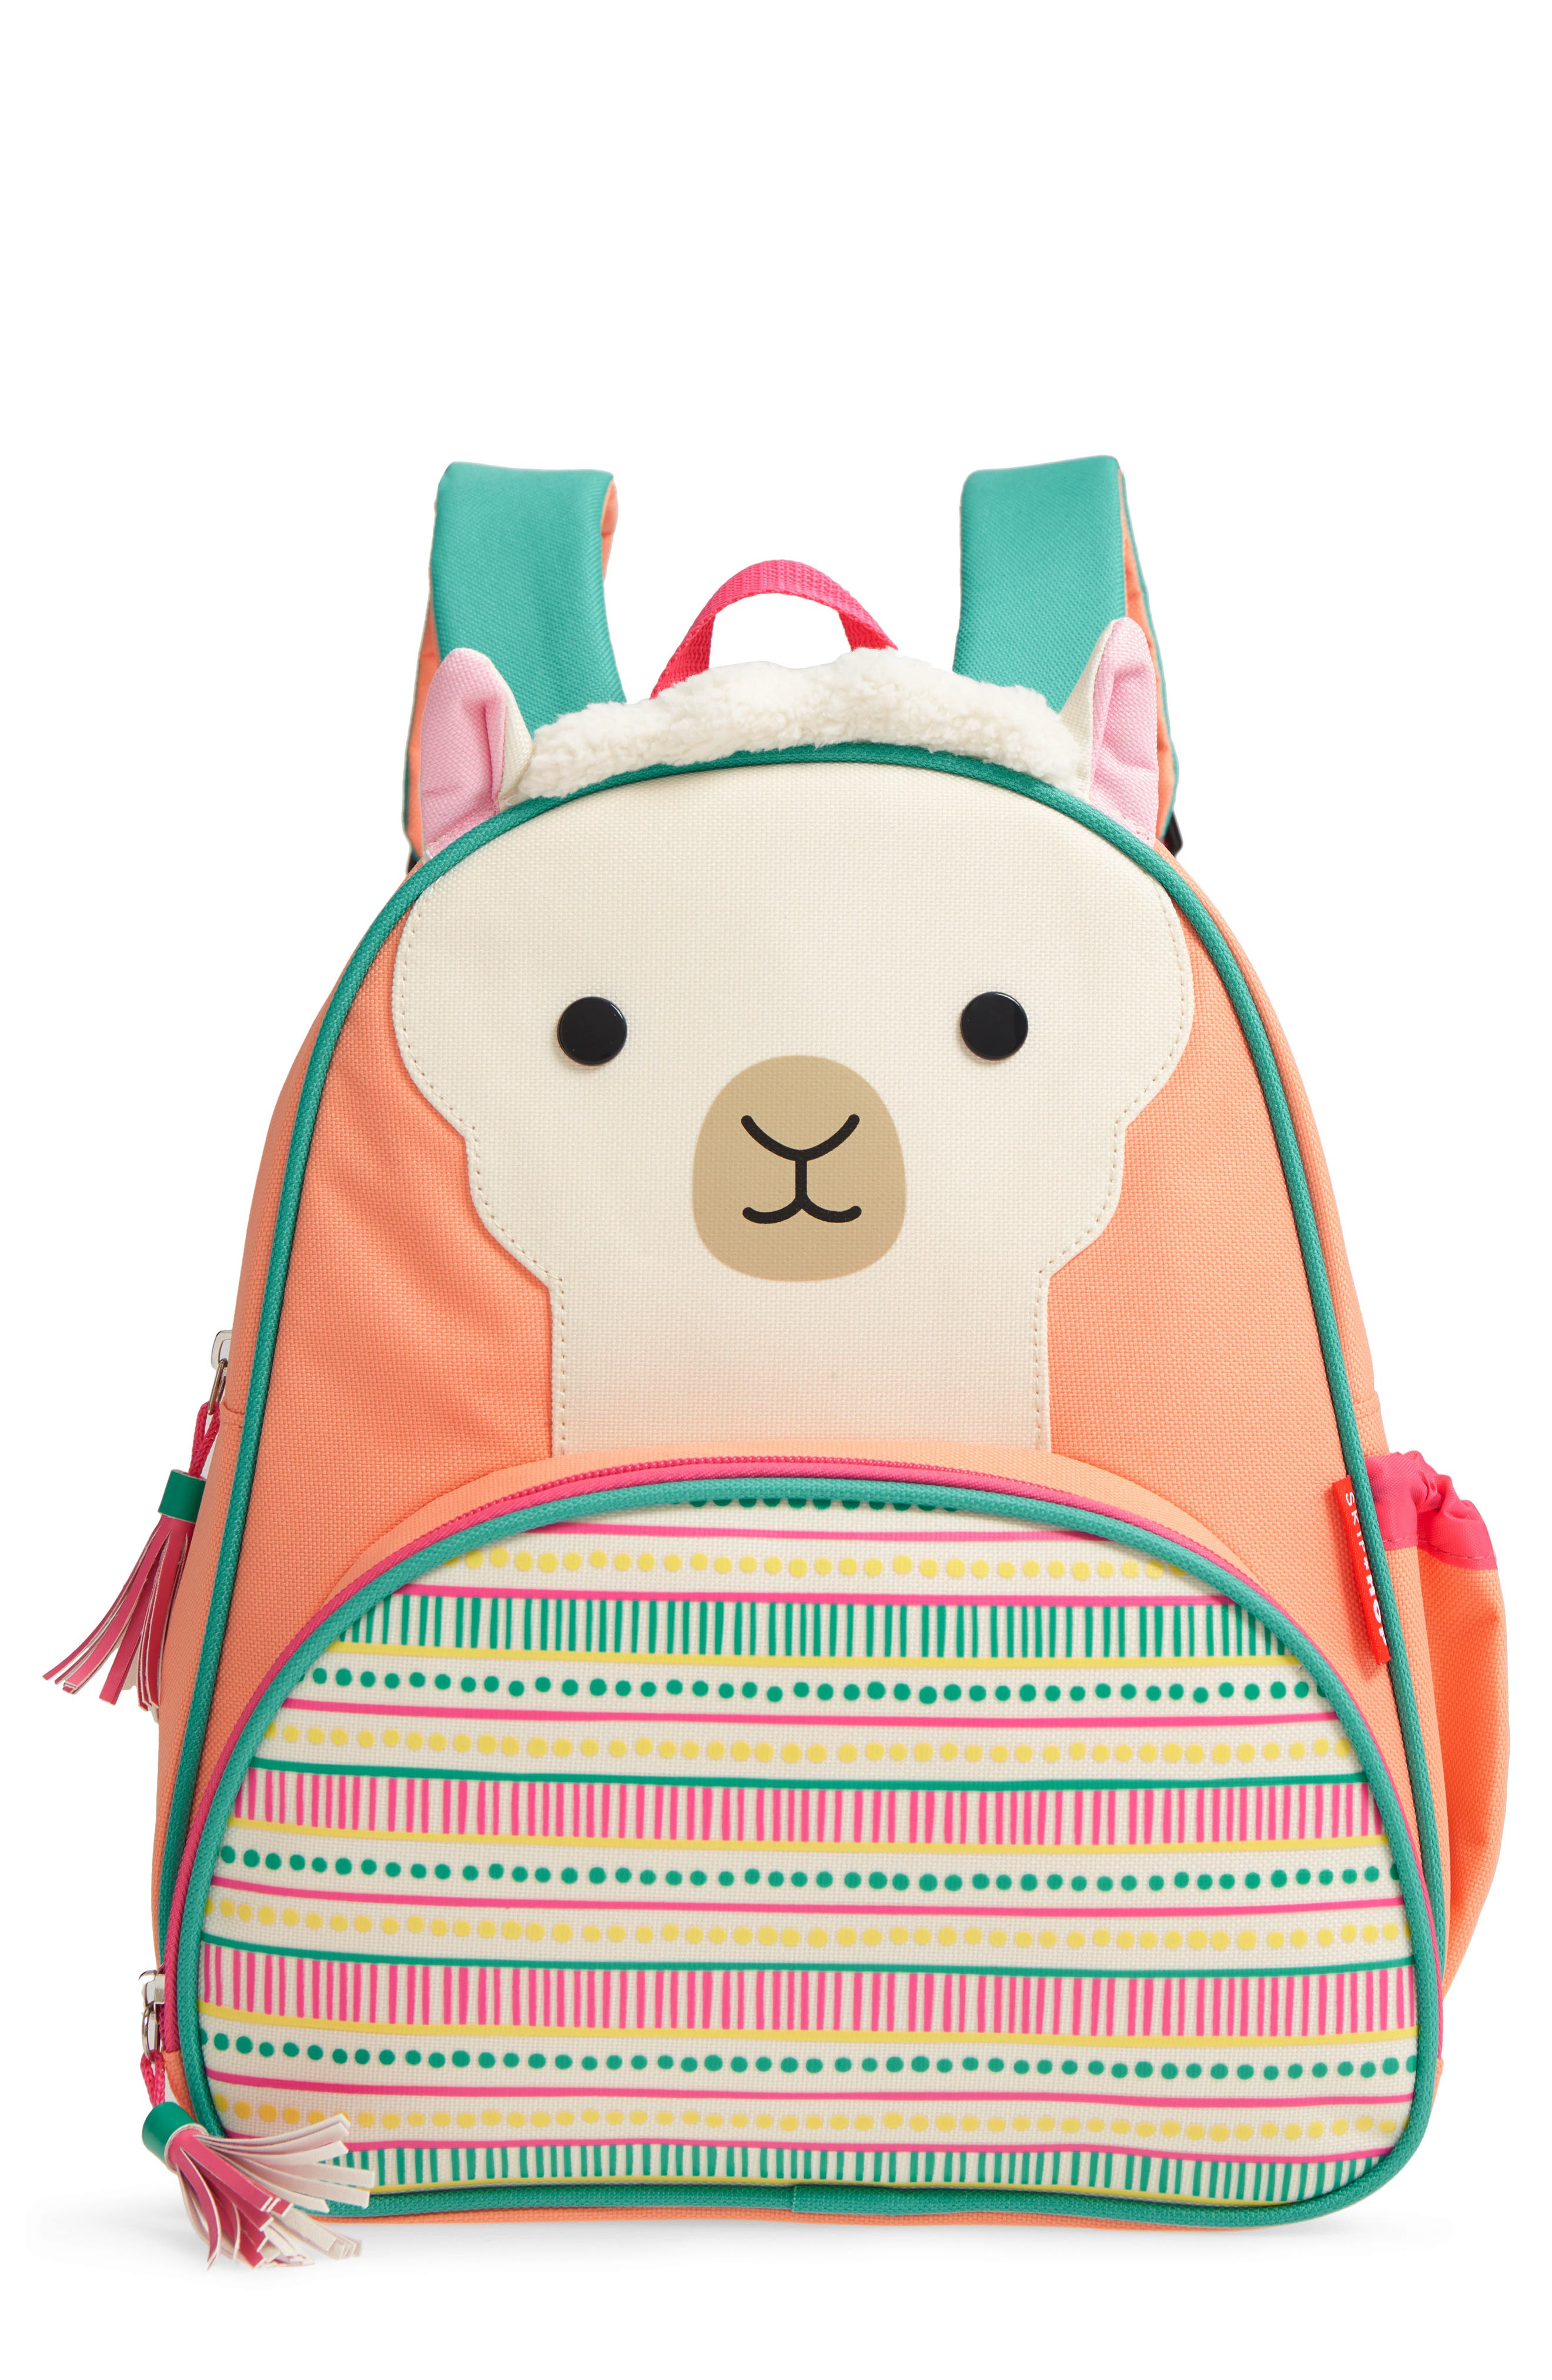 Zoo Pack Backpack,                         Main,                         color, Pink Multi